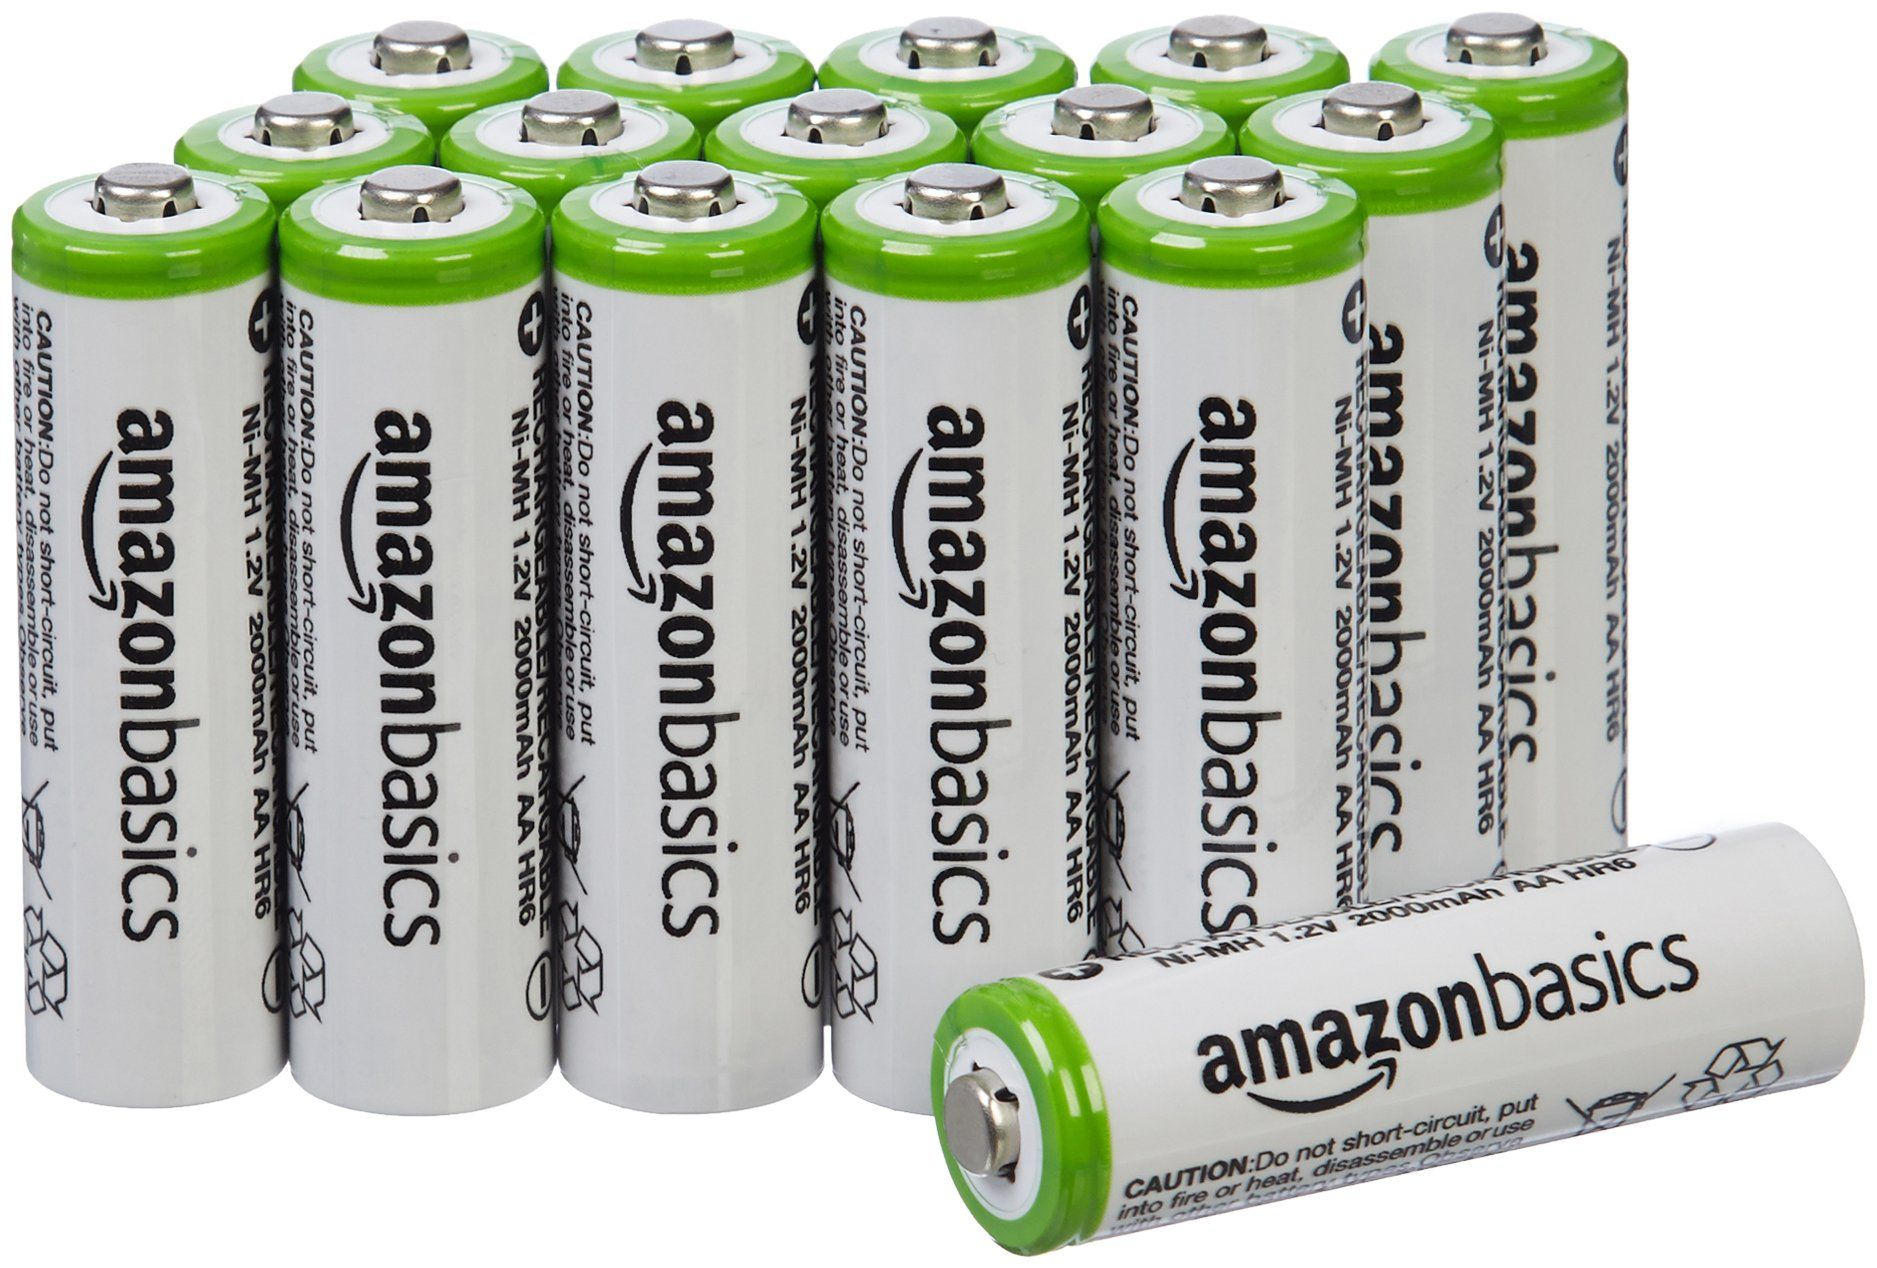 Amazonbasics Aa Rechargeable Batteries 16 Pack Packaging May Vary Rechargeable Batteries Amazonbasics Rechargeable Batteries Charge Battery Recharge